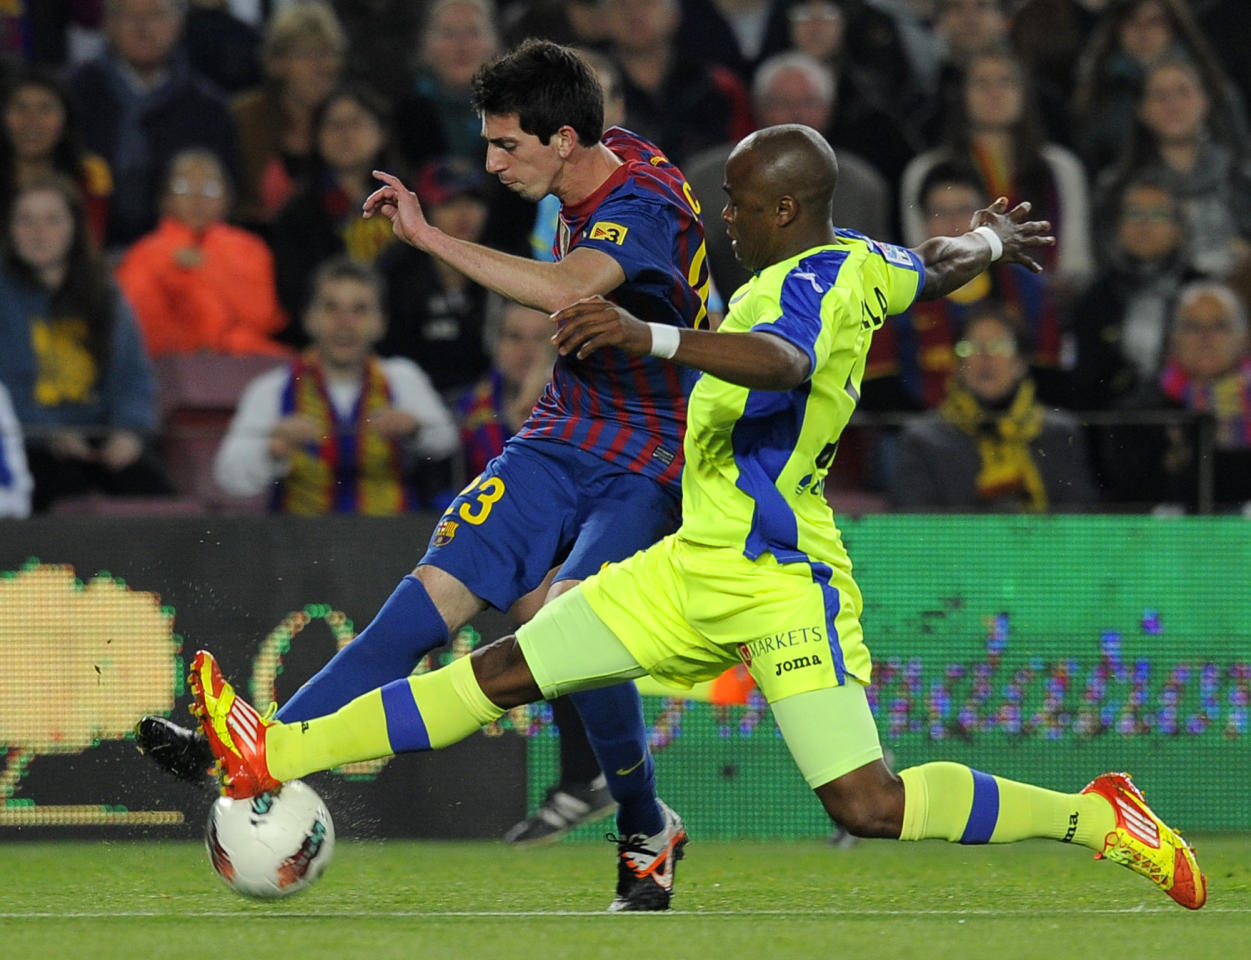 Barcelona's forward Isaac Cuenca (L) vies with Getafe's South African defender Tshepo Masilela (R) during the Spanish league football match FC Barcelona vs Getafe CF on April 10, 2012 at the Camp Nou stadium in Barcelona. AFP PHOTO/LLUIS GENE (Photo credit should read LLUIS GENE/AFP/Getty Images)